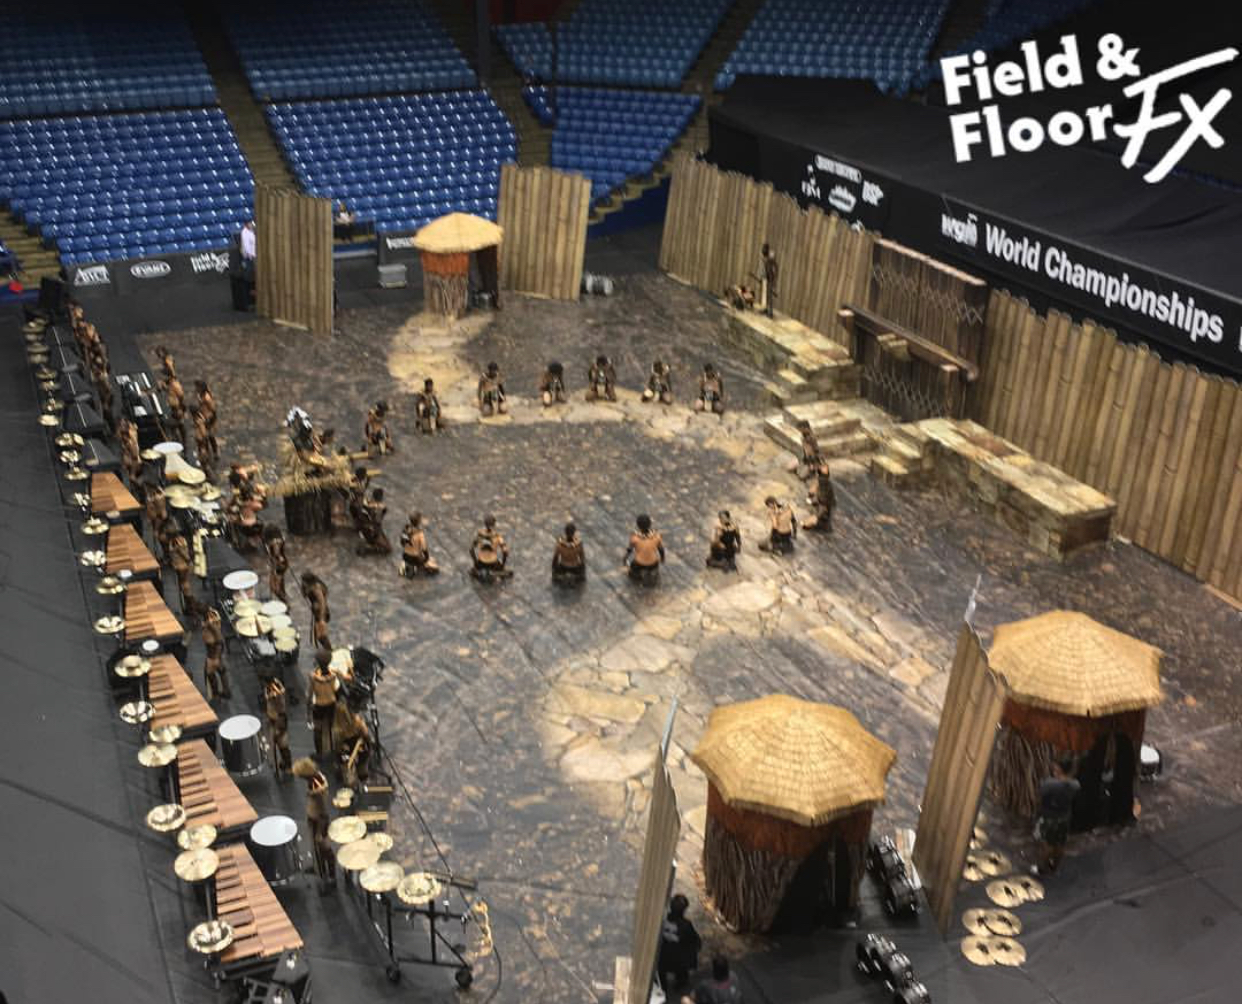 - STRYKE Percussion (SPW) 2017 Show floorPrice: $1,000Size: 50x90Available for pick up in Hollywood Hills, FL. Freight quotes available upon request.Contact dyunis@stryke.org to purchase or for more information. mation.